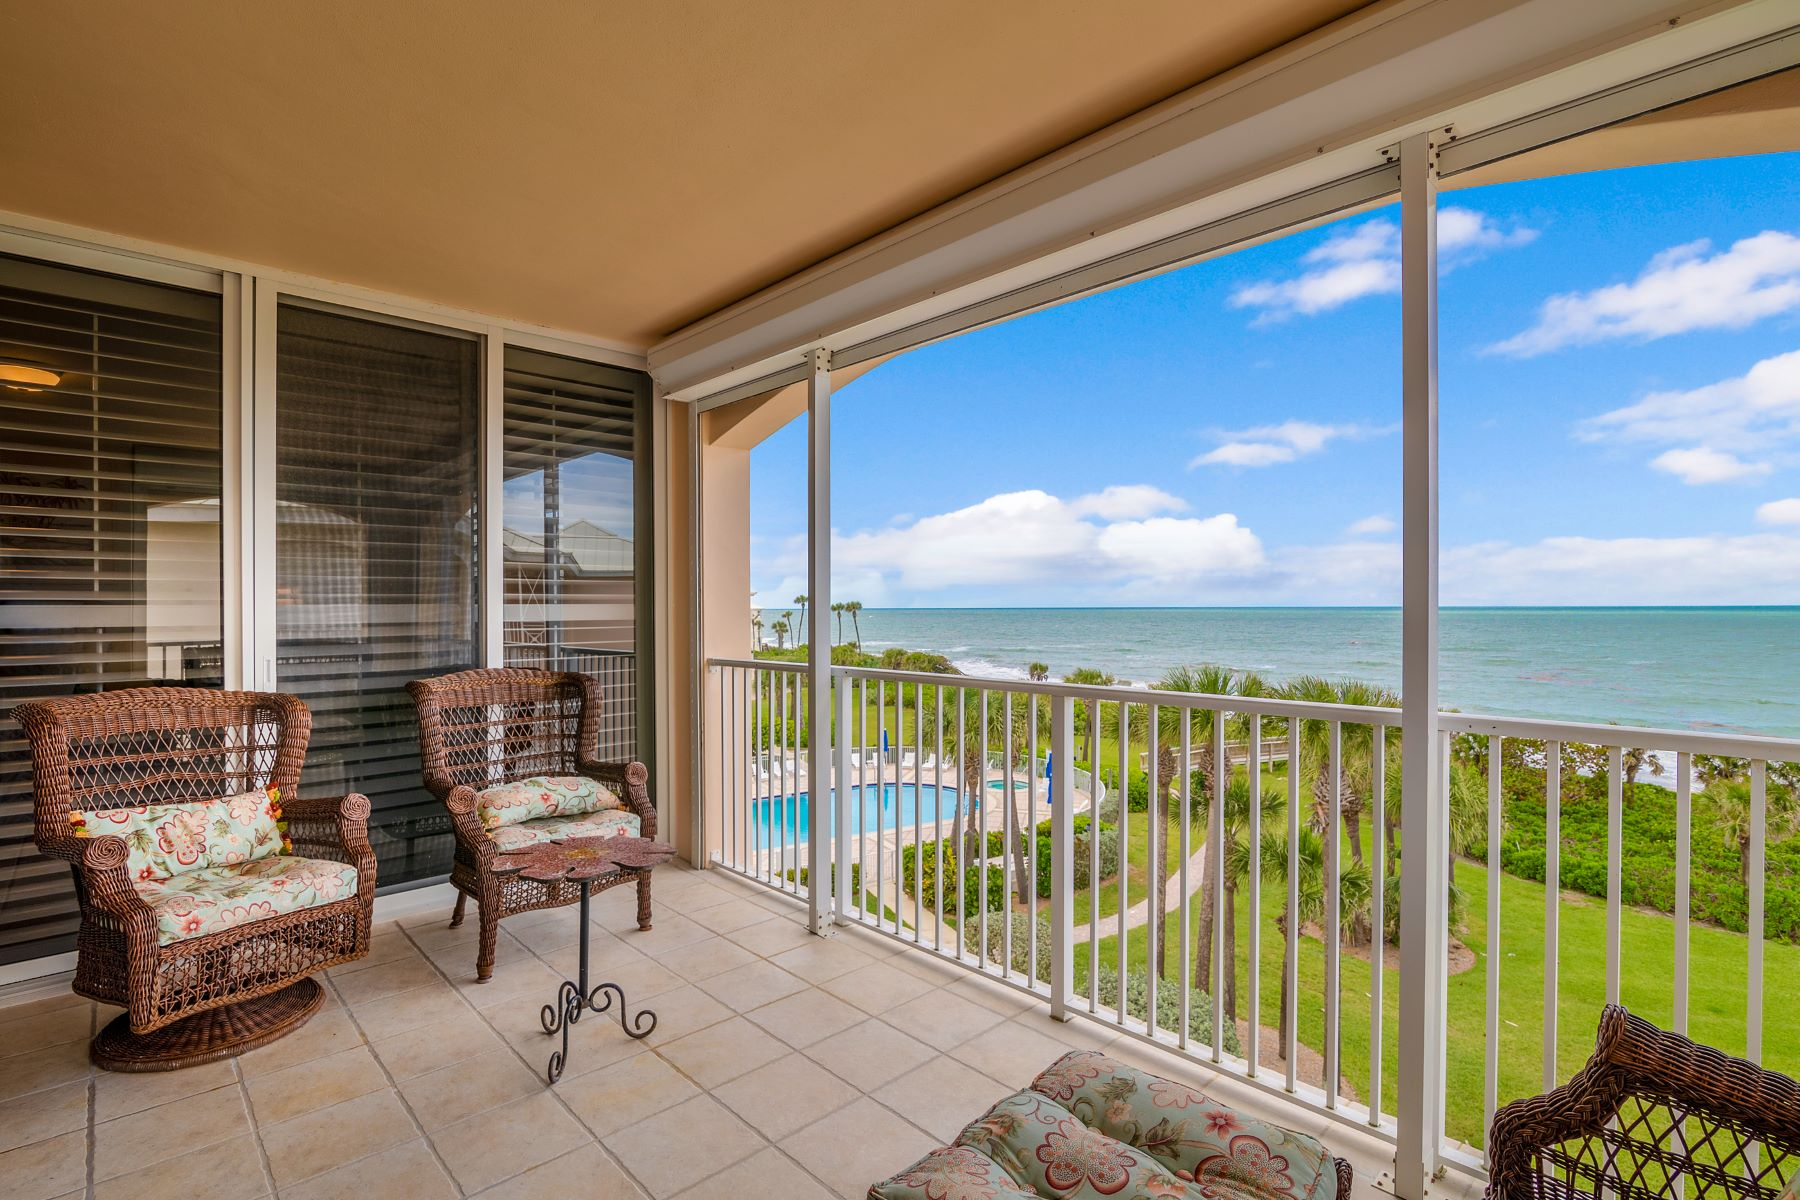 Single Family Homes for Sale at Top Floor Oceanfront Condo 8866 N Sea Oaks Way 212 Vero Beach, Florida 32963 United States